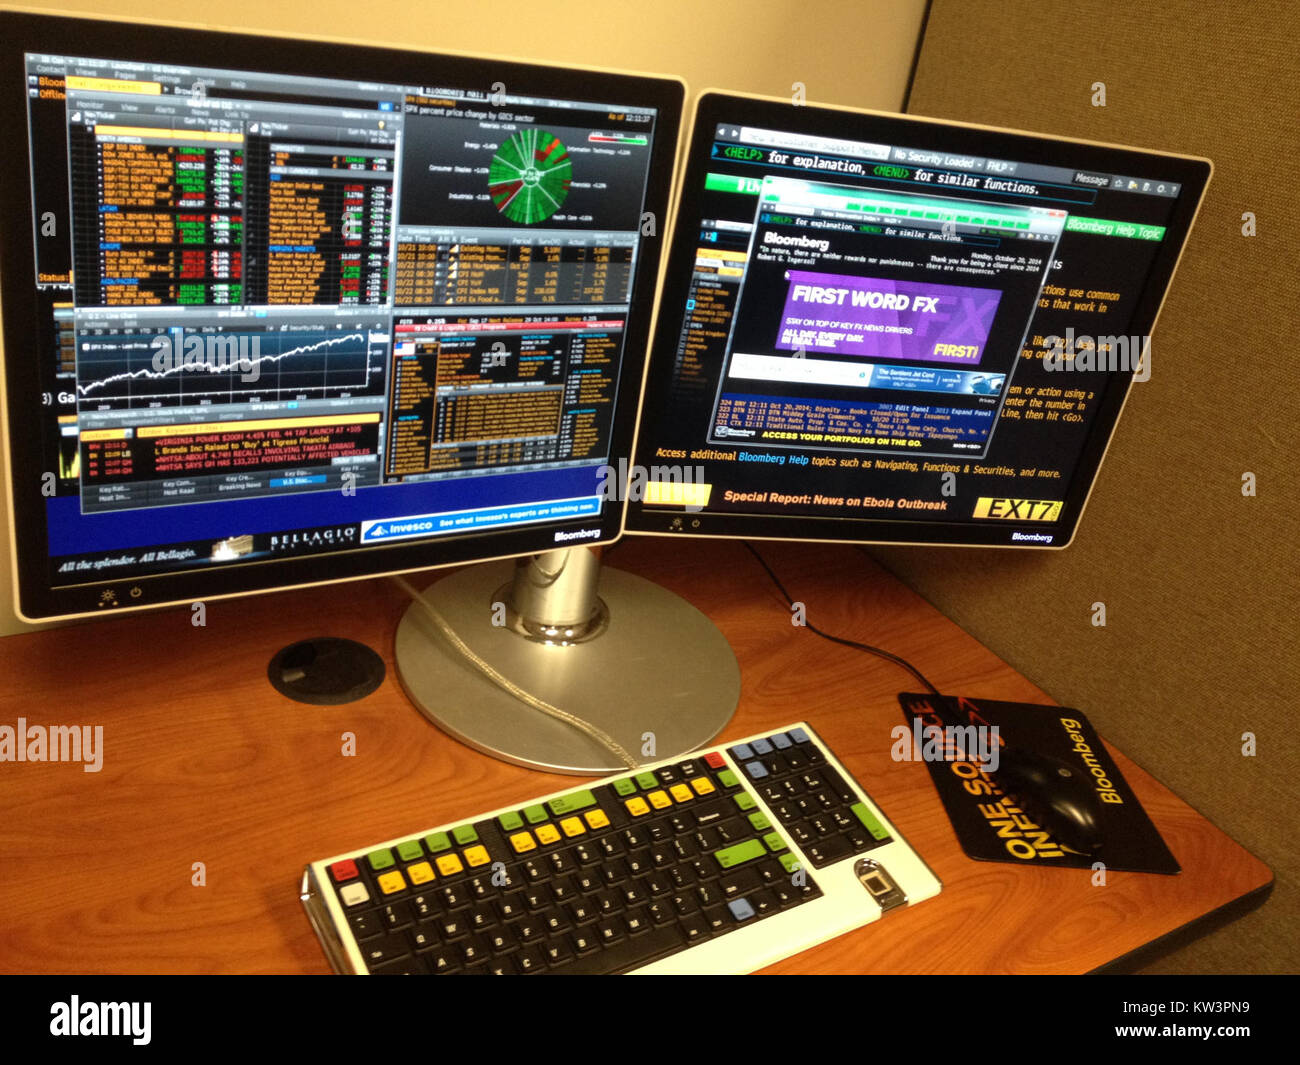 bloomberg stock stock photos amp bloomberg stock stock